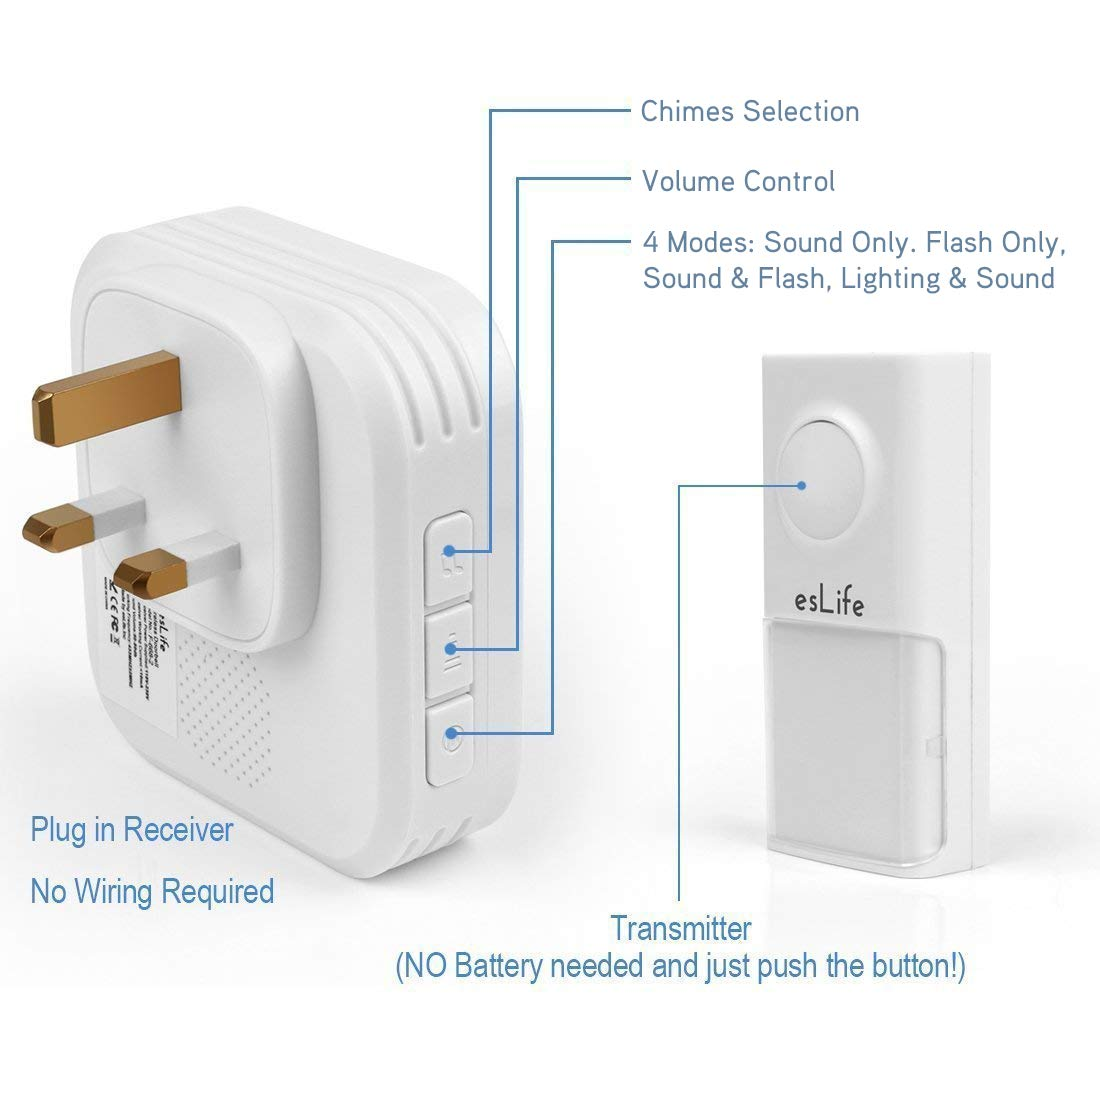 No Battery Required Wireless Doorbell 1 Push Buttonself Generating Power With 2 Wall Plug In Receivers Ip55 Waterproof Door Bell 58 Chimes Kit Electric Dryer Wiring Question Electrical Diy Chatroom White Tools